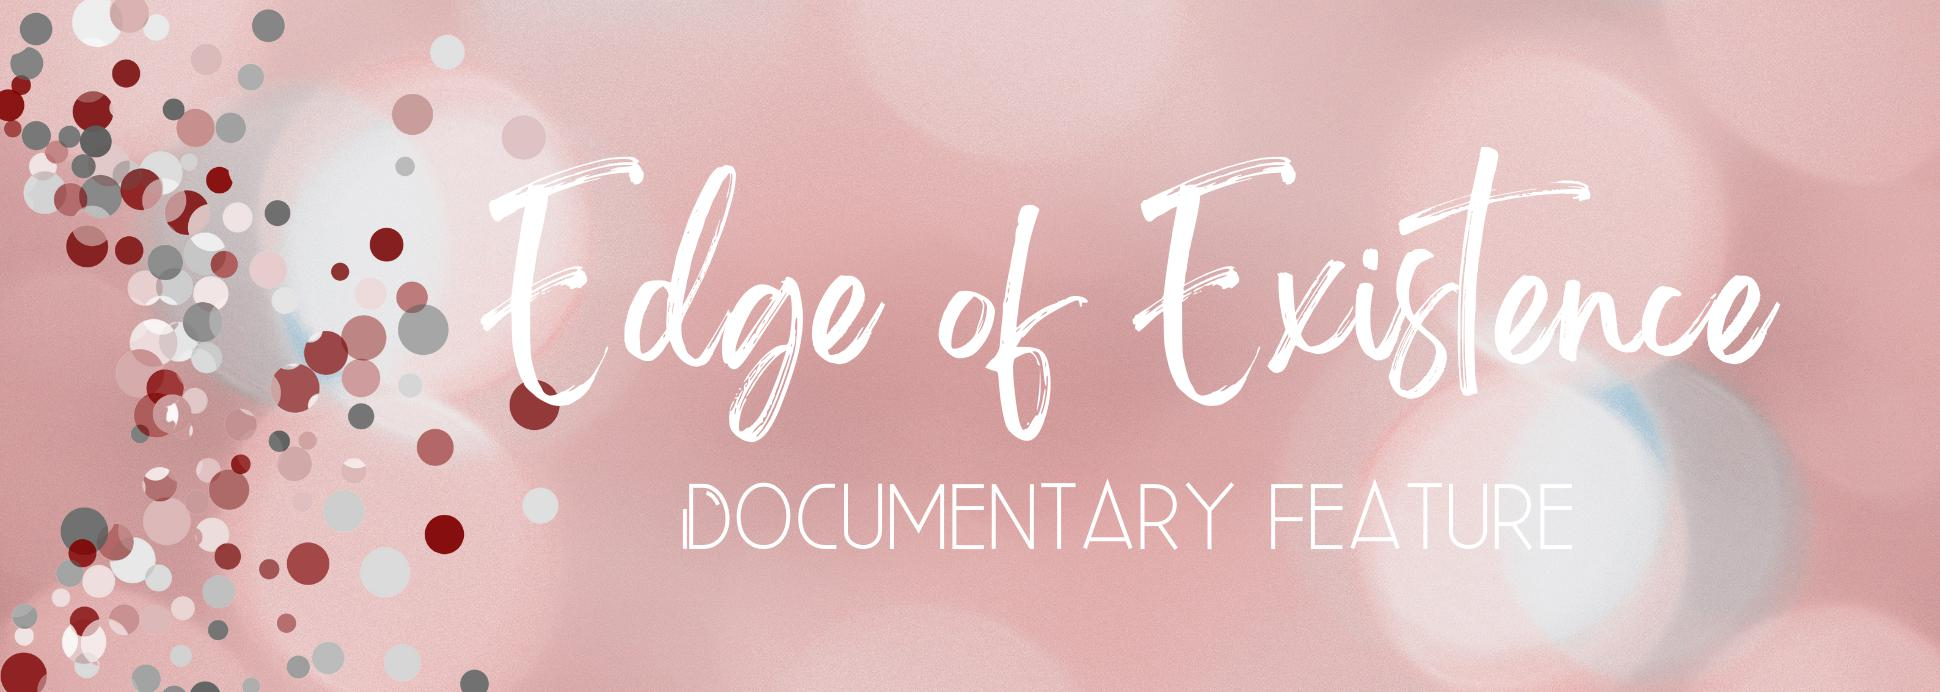 Edge of Existence (Documentary Feature)